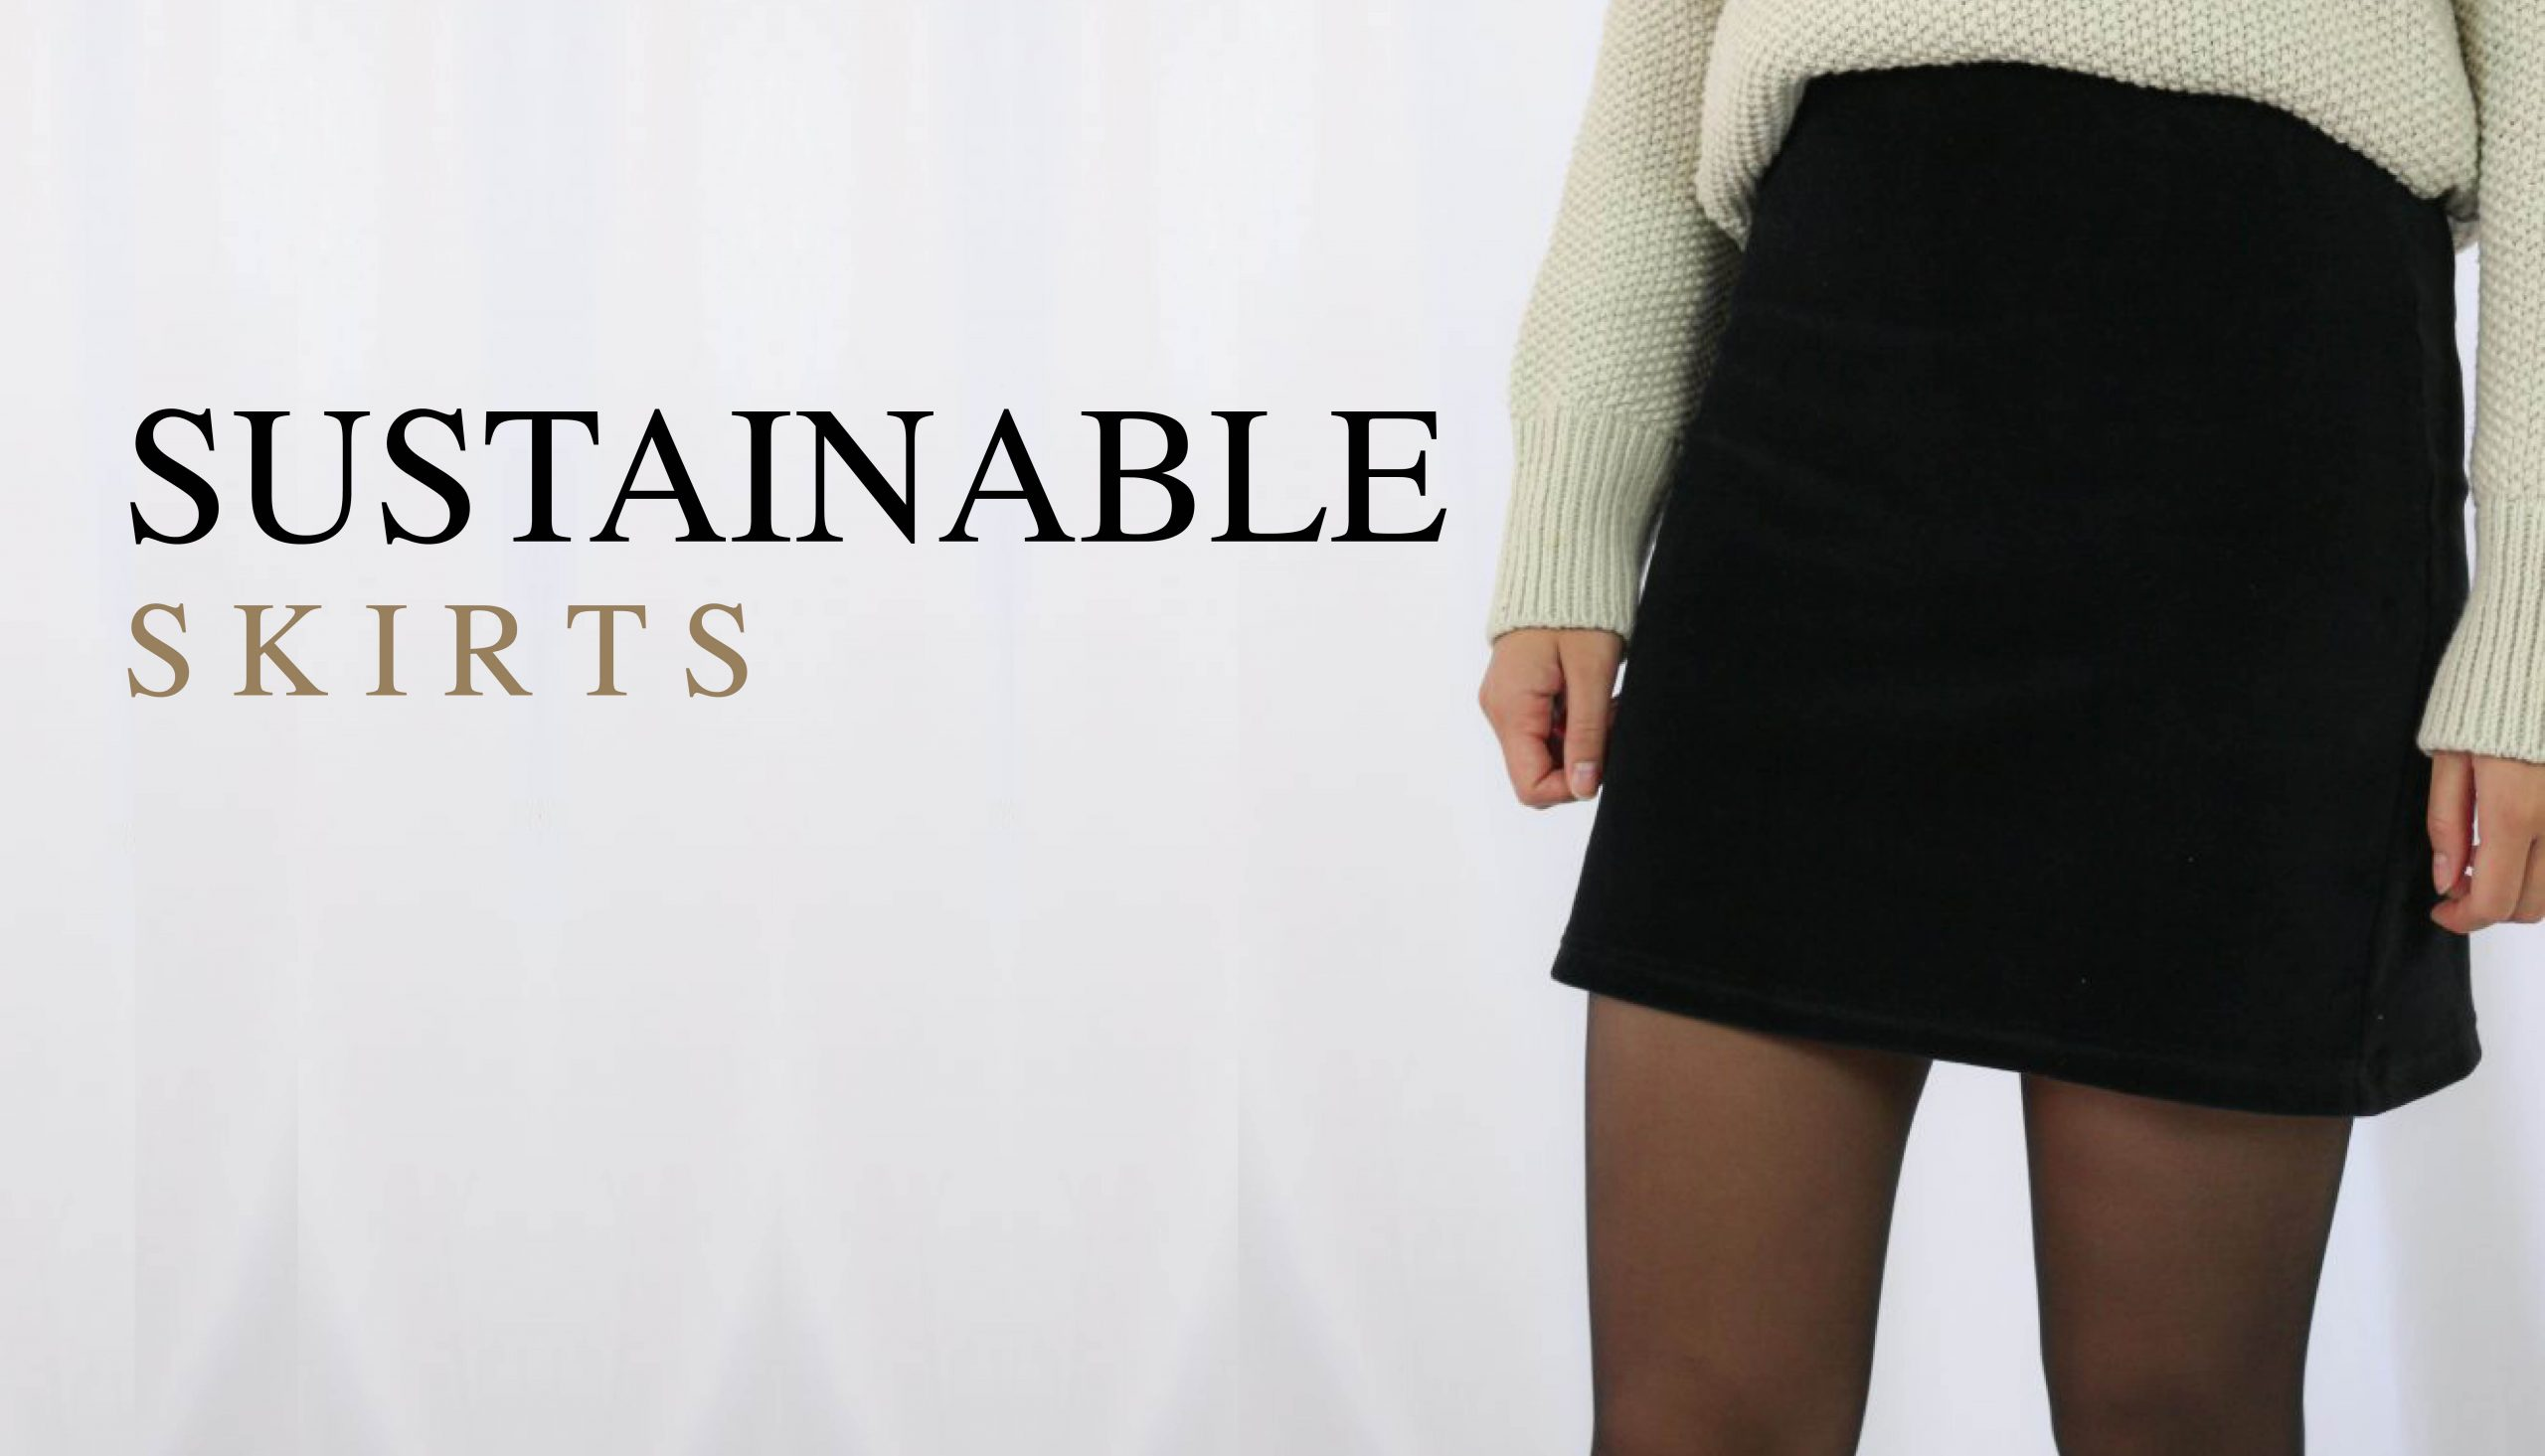 SUSTAINABLE SKIRTS